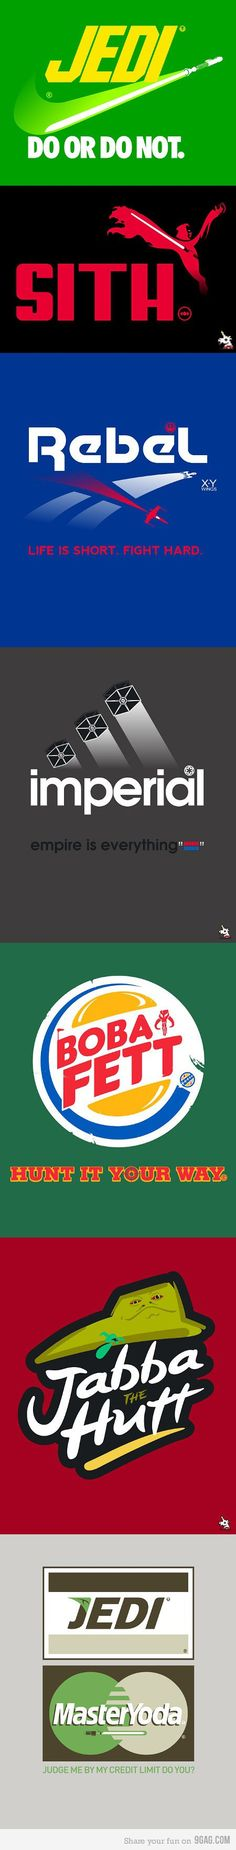 If our universe was the Star Wars universe.